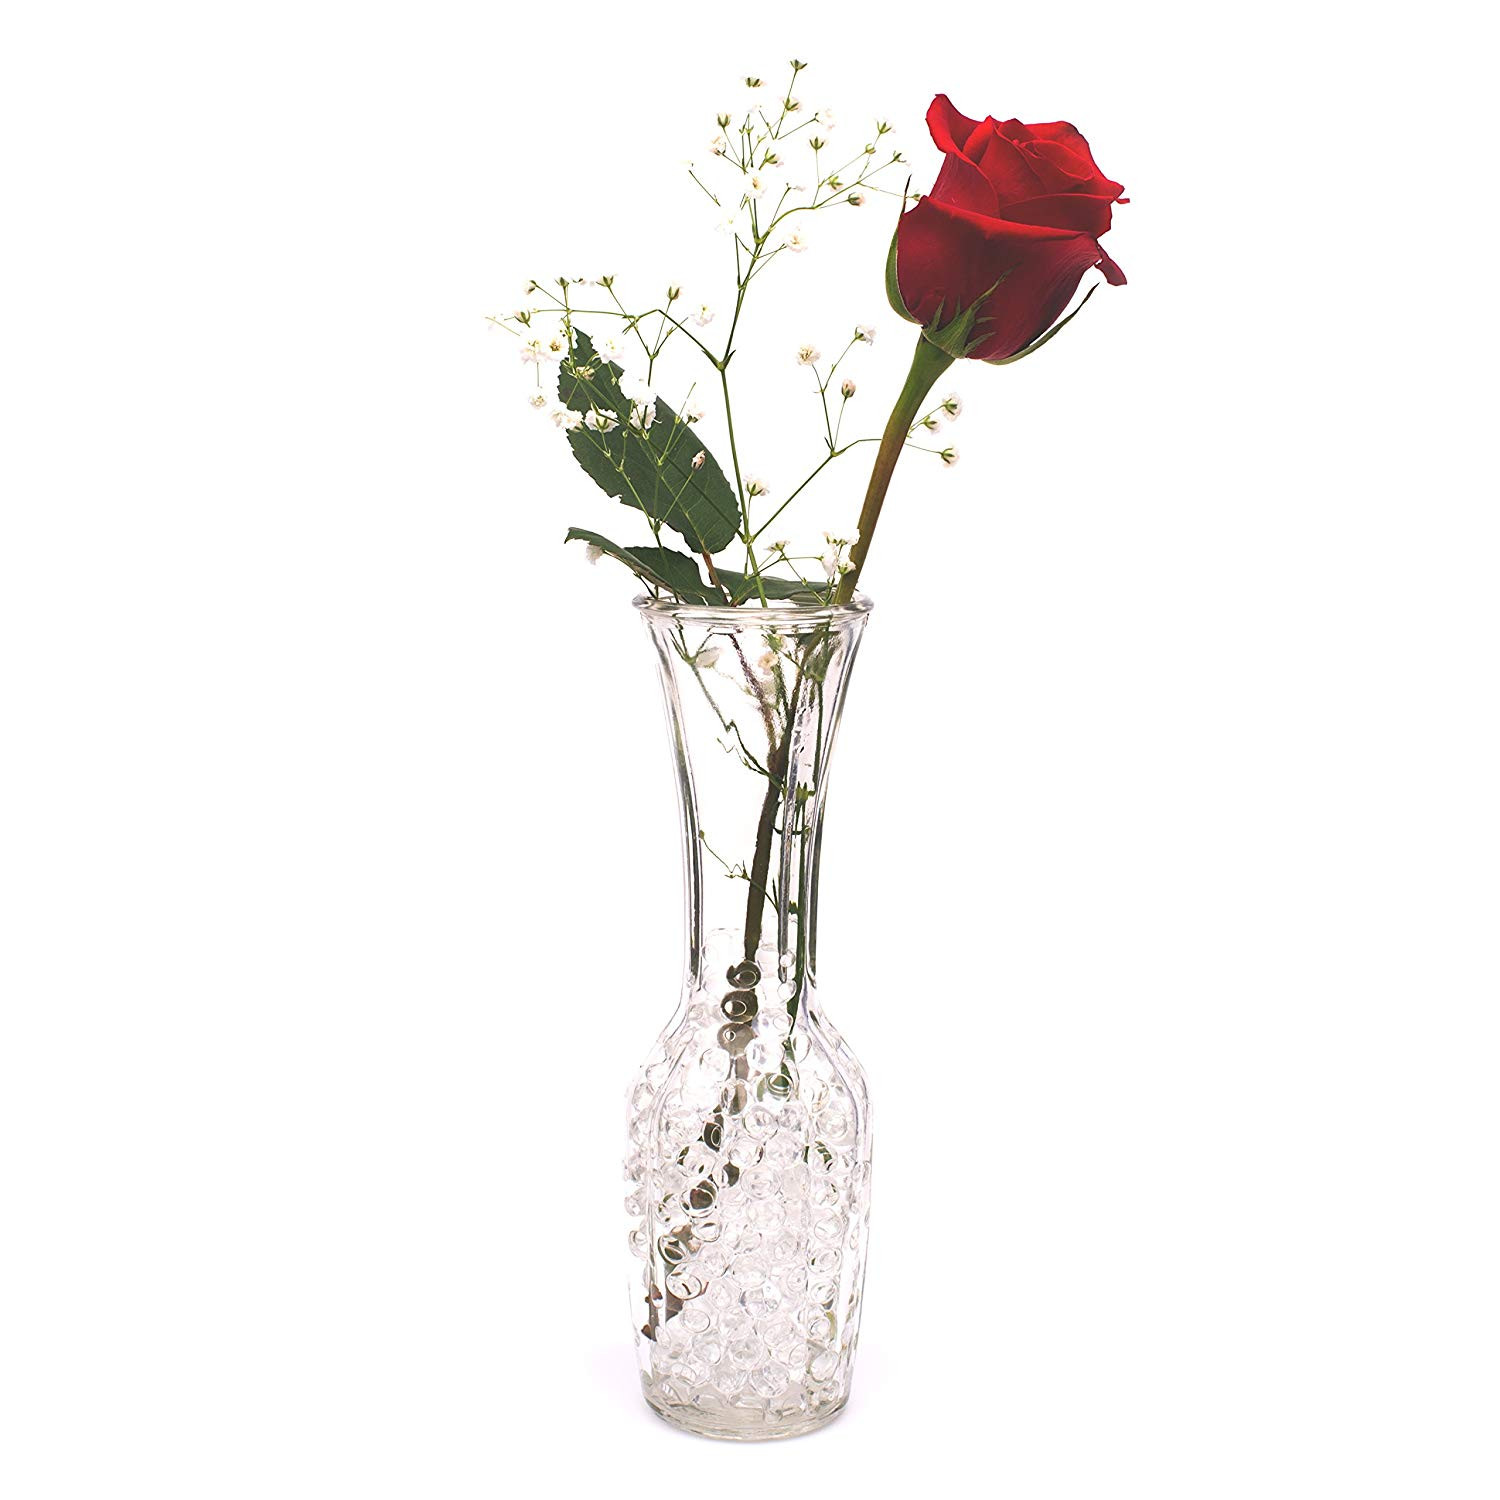 glass vase fillers bulk of amazon com magic beadz clear jelly water beads transparent gel with amazon com magic beadz clear jelly water beads transparent gel pearls vase filler wedding centerpiece candles flower arrangements over 20000